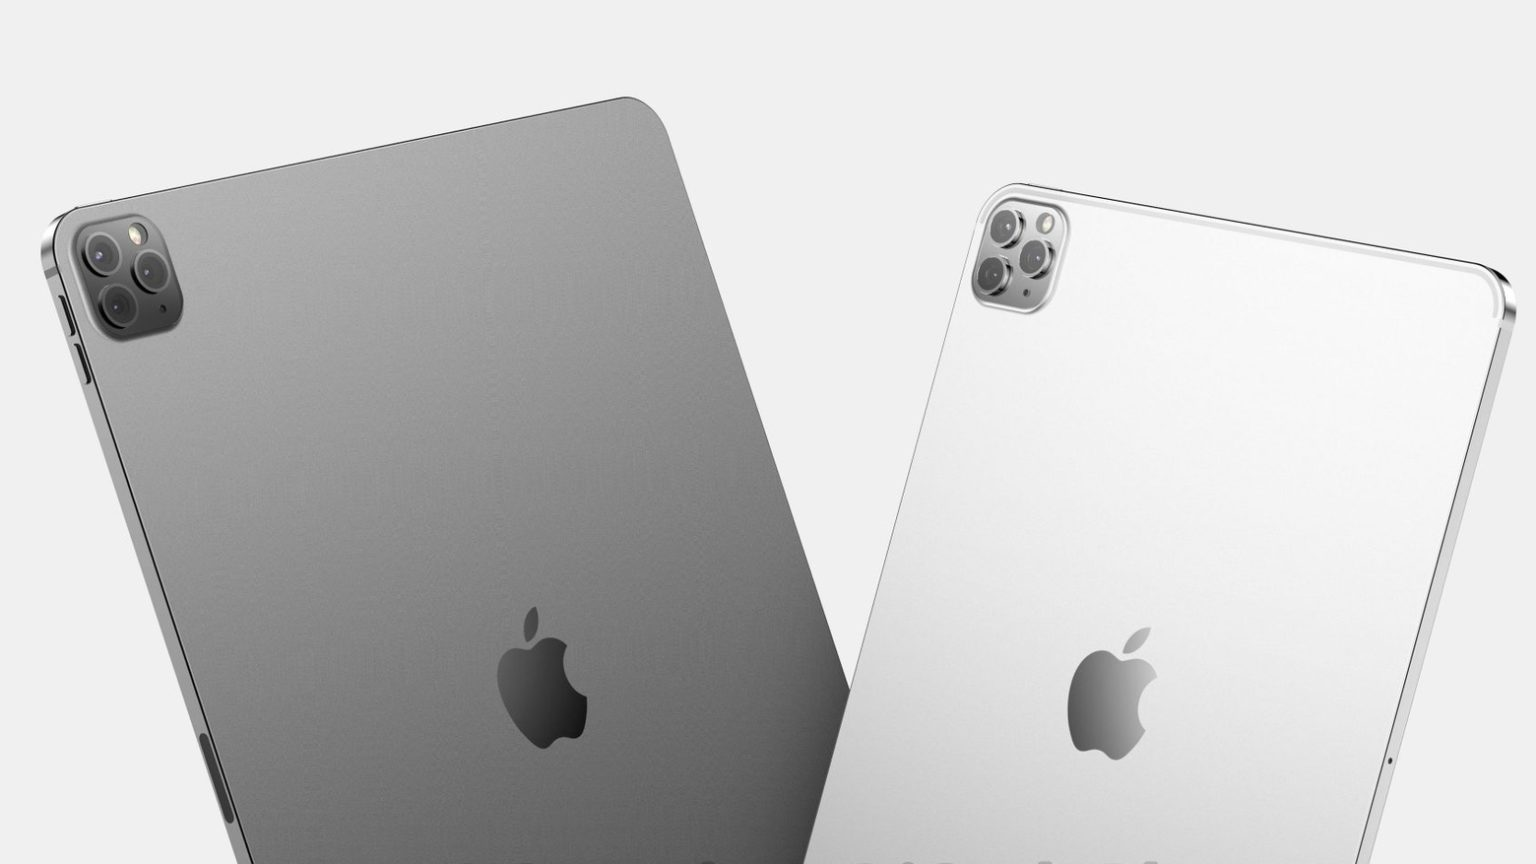 This 2020 iPad Pro render is based on rumors